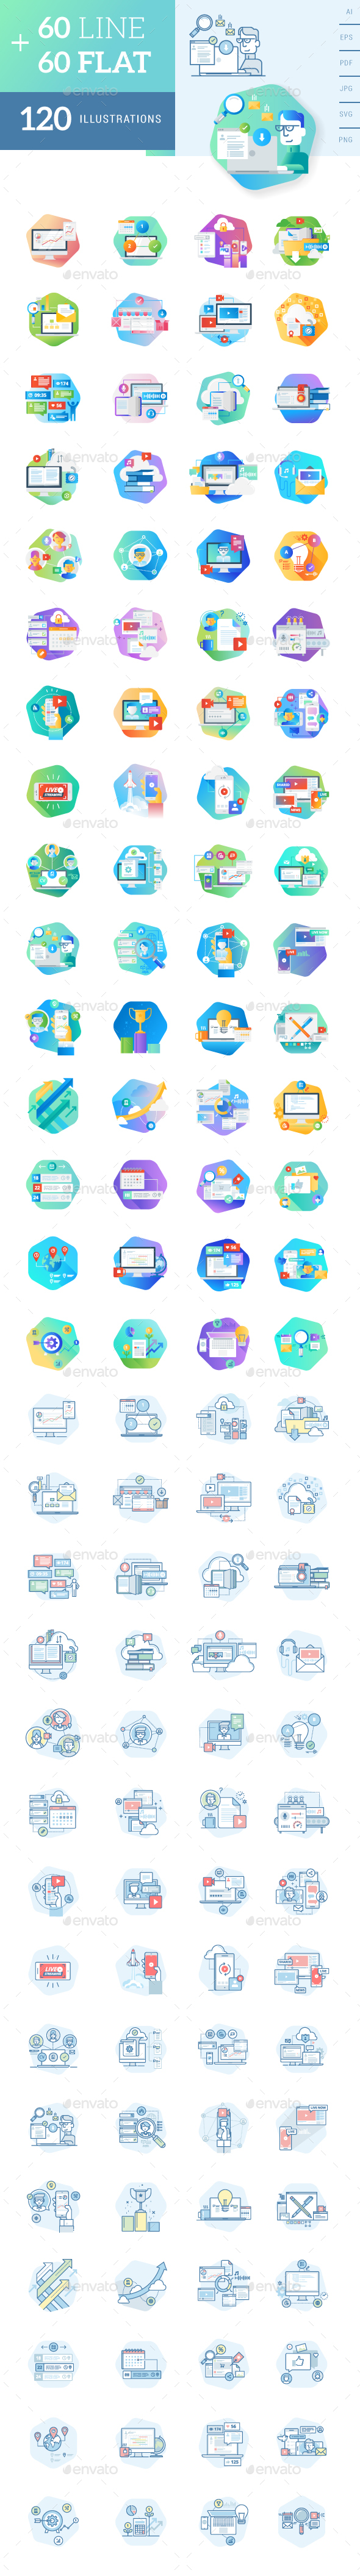 Flat and Line Concept Icons - Icons